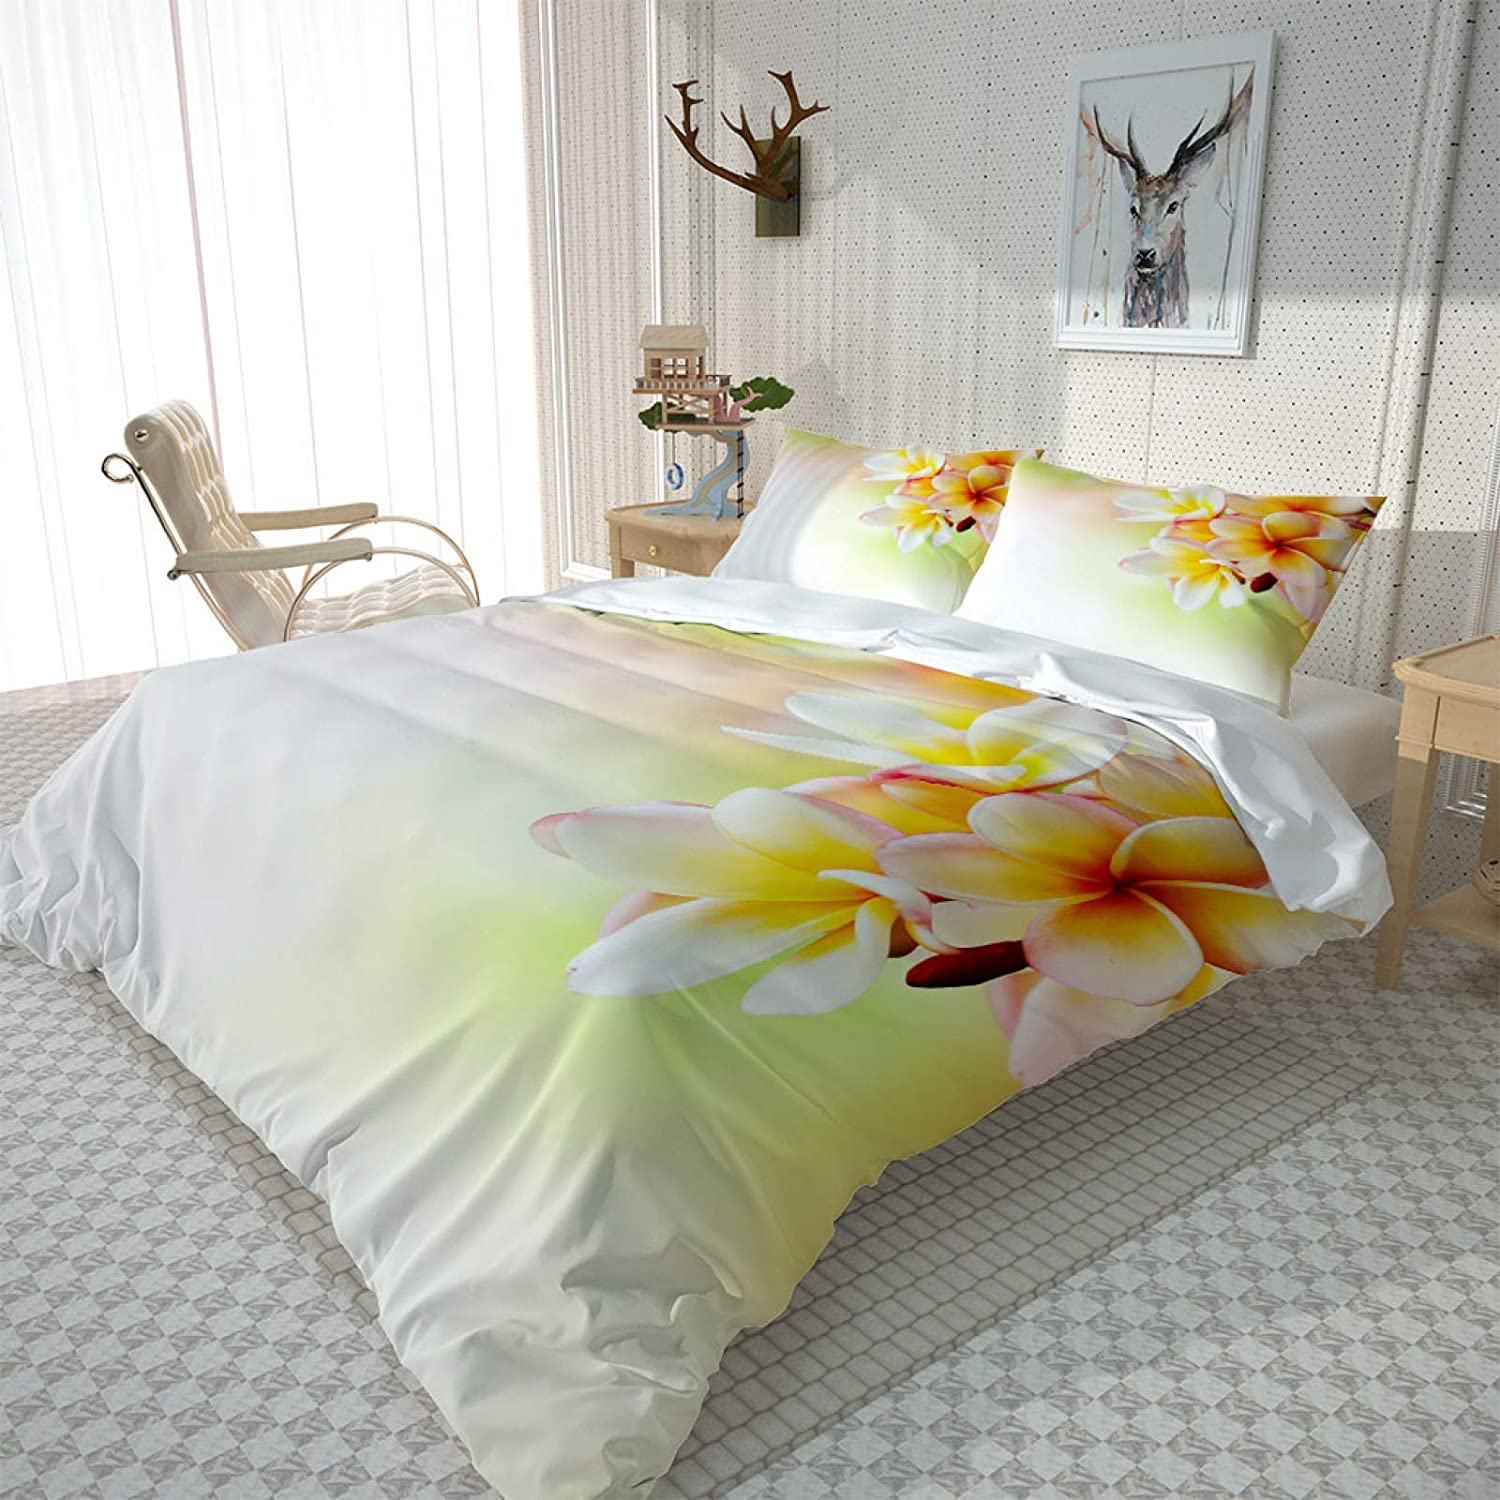 HKDGHTHJ 3D Bedding overseas is Super Yellow Branded goods Soft and Flower Comfortable